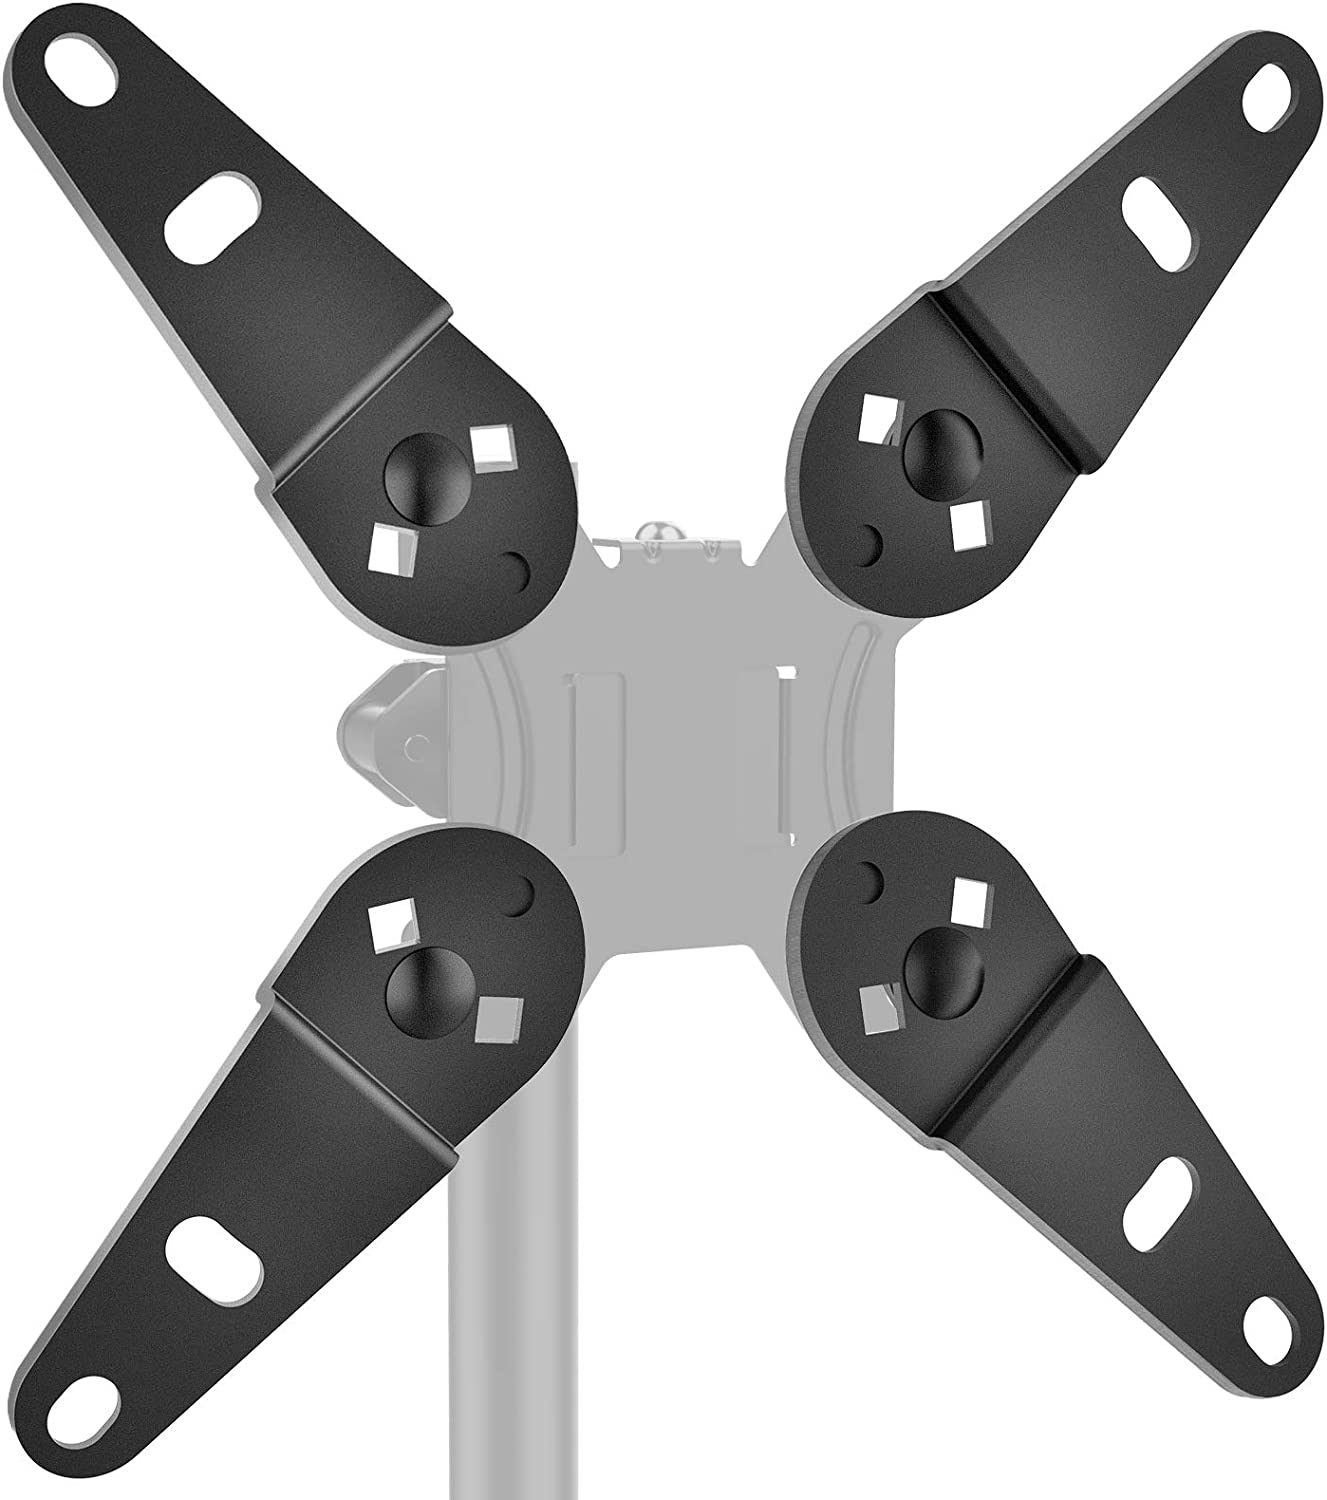 HUANUO Universal Vesa Mount Adapter -Vesa Extender, Monitor Mount Adapter Kit Fits Most 13 to 32 inch, Convert Vesa Plate to Reach 200×100 and 200×200